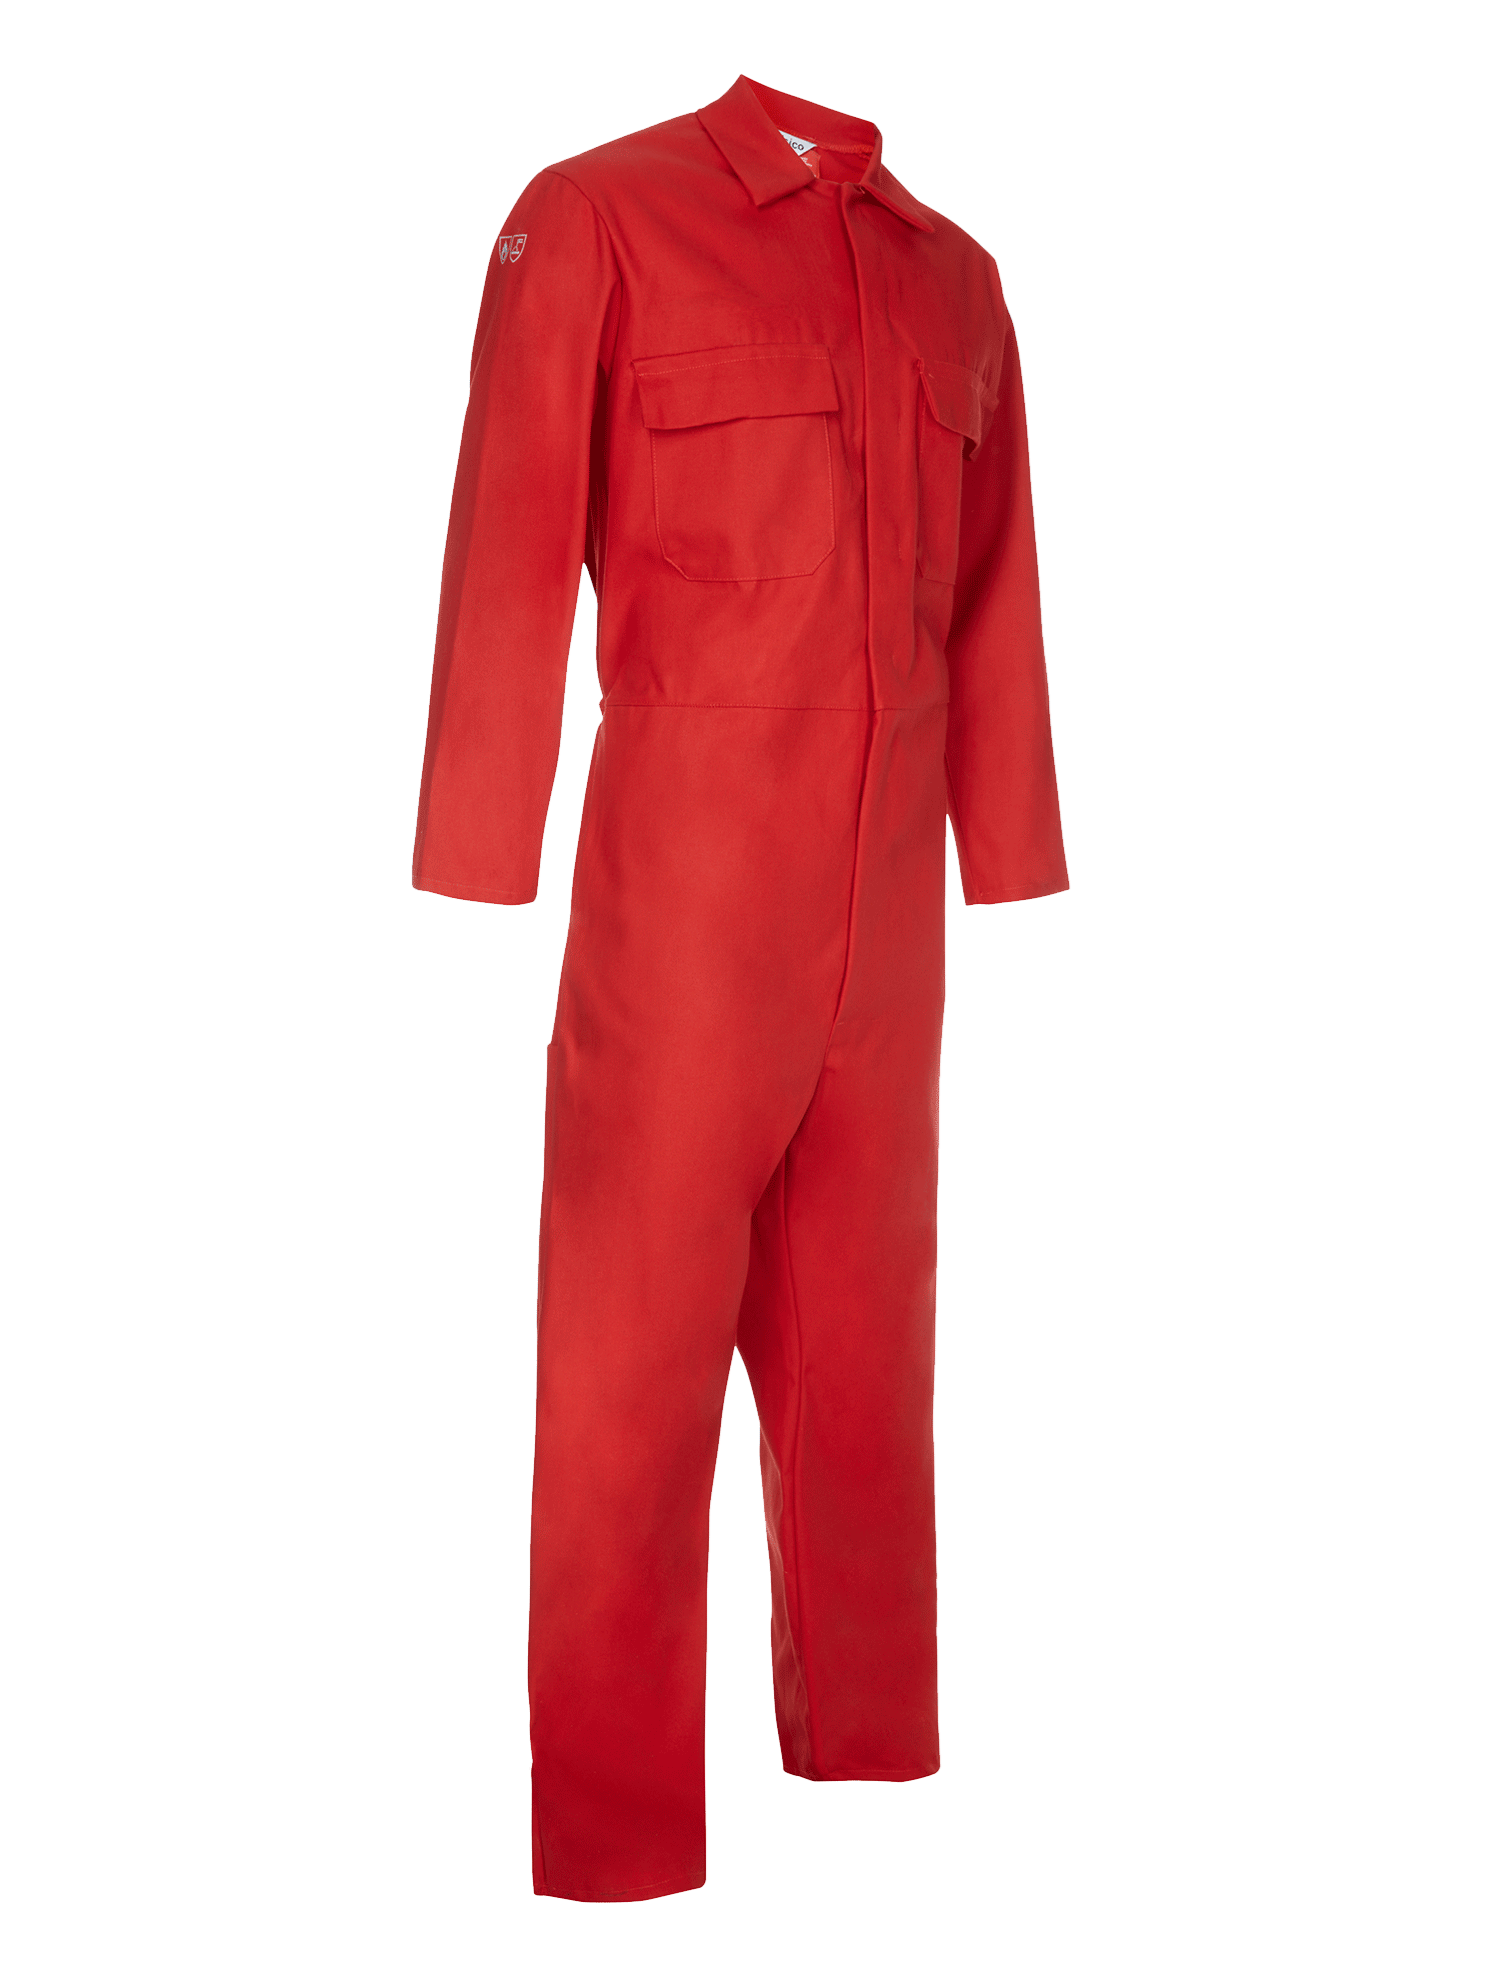 Picture of Coverall made with Zeus FR - Red